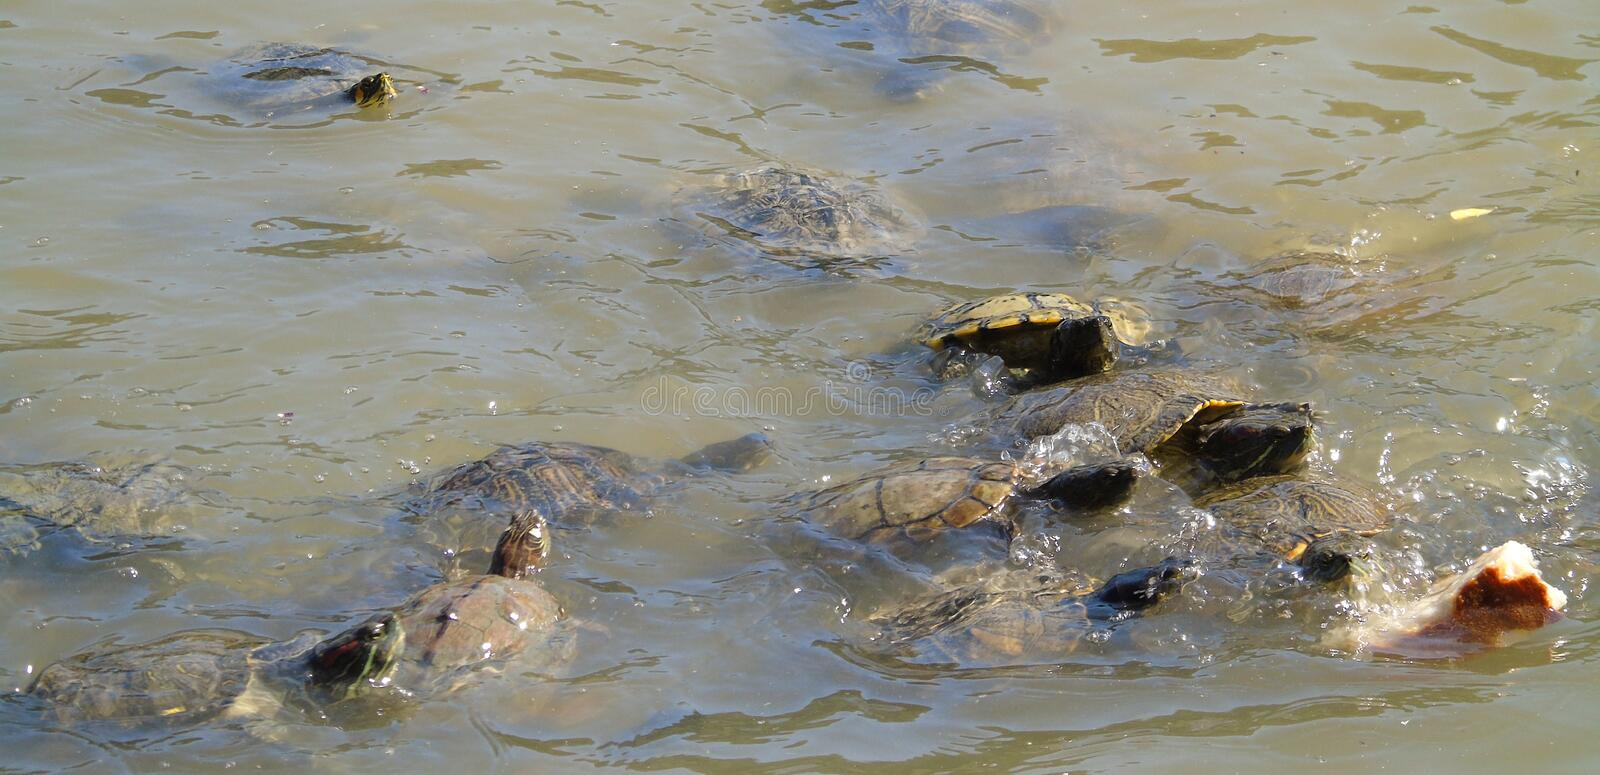 Many turtles swimming towards a piece of bread, animals that eat bread in water, lake stock photography